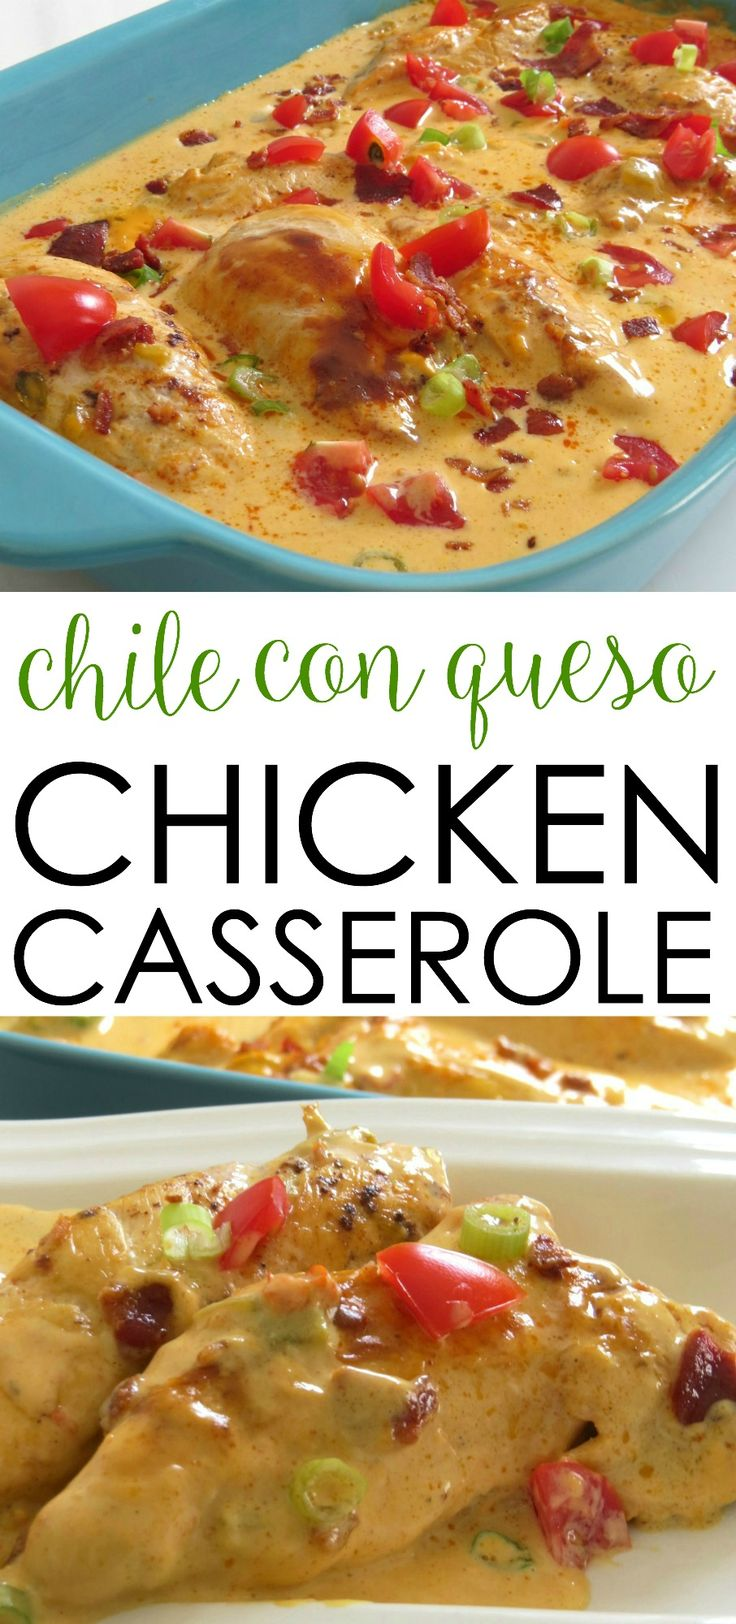 This easy chicken casserole recipe is a crowd-pleasing favorite! It's filled with Tex Mex flavors and covered in cheese. Chile Con Queso Chicken Casserole